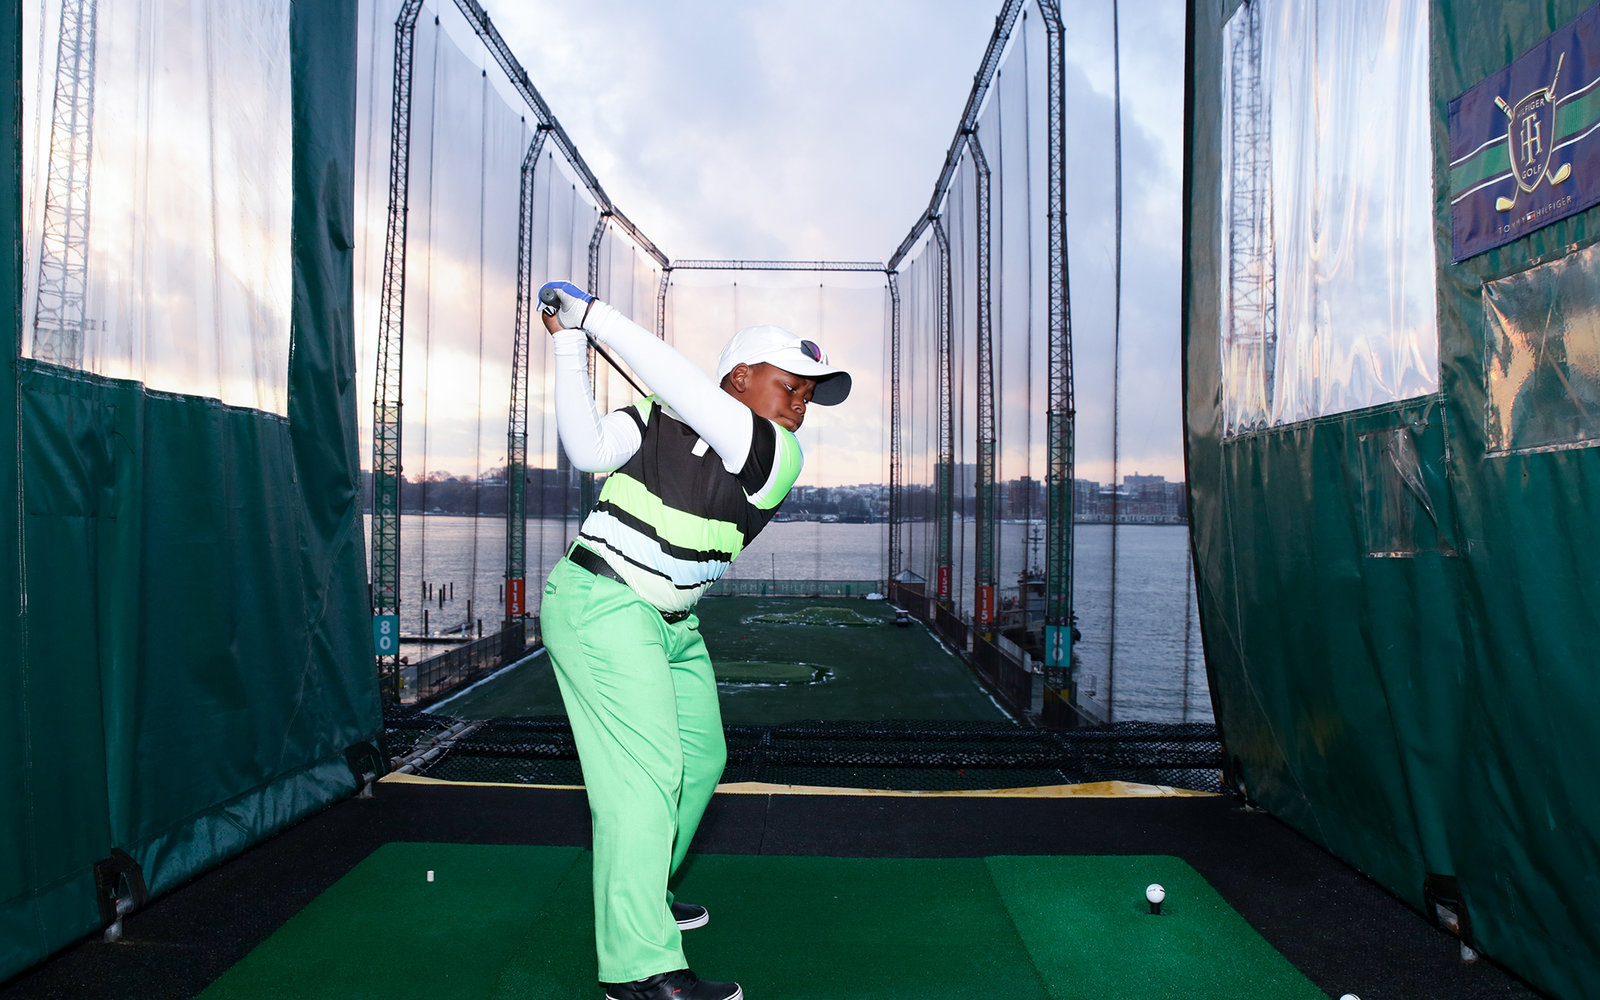 NEW YORK, NY - DECEMBER 10:  Golfer Zamokuhle Nxasana attends the Netflix  The Short Game  Golfing Event at Chelsea Piers Sports Center on December 10, 2013 in New York City.  (Photo by Andrew Toth/Getty Images)